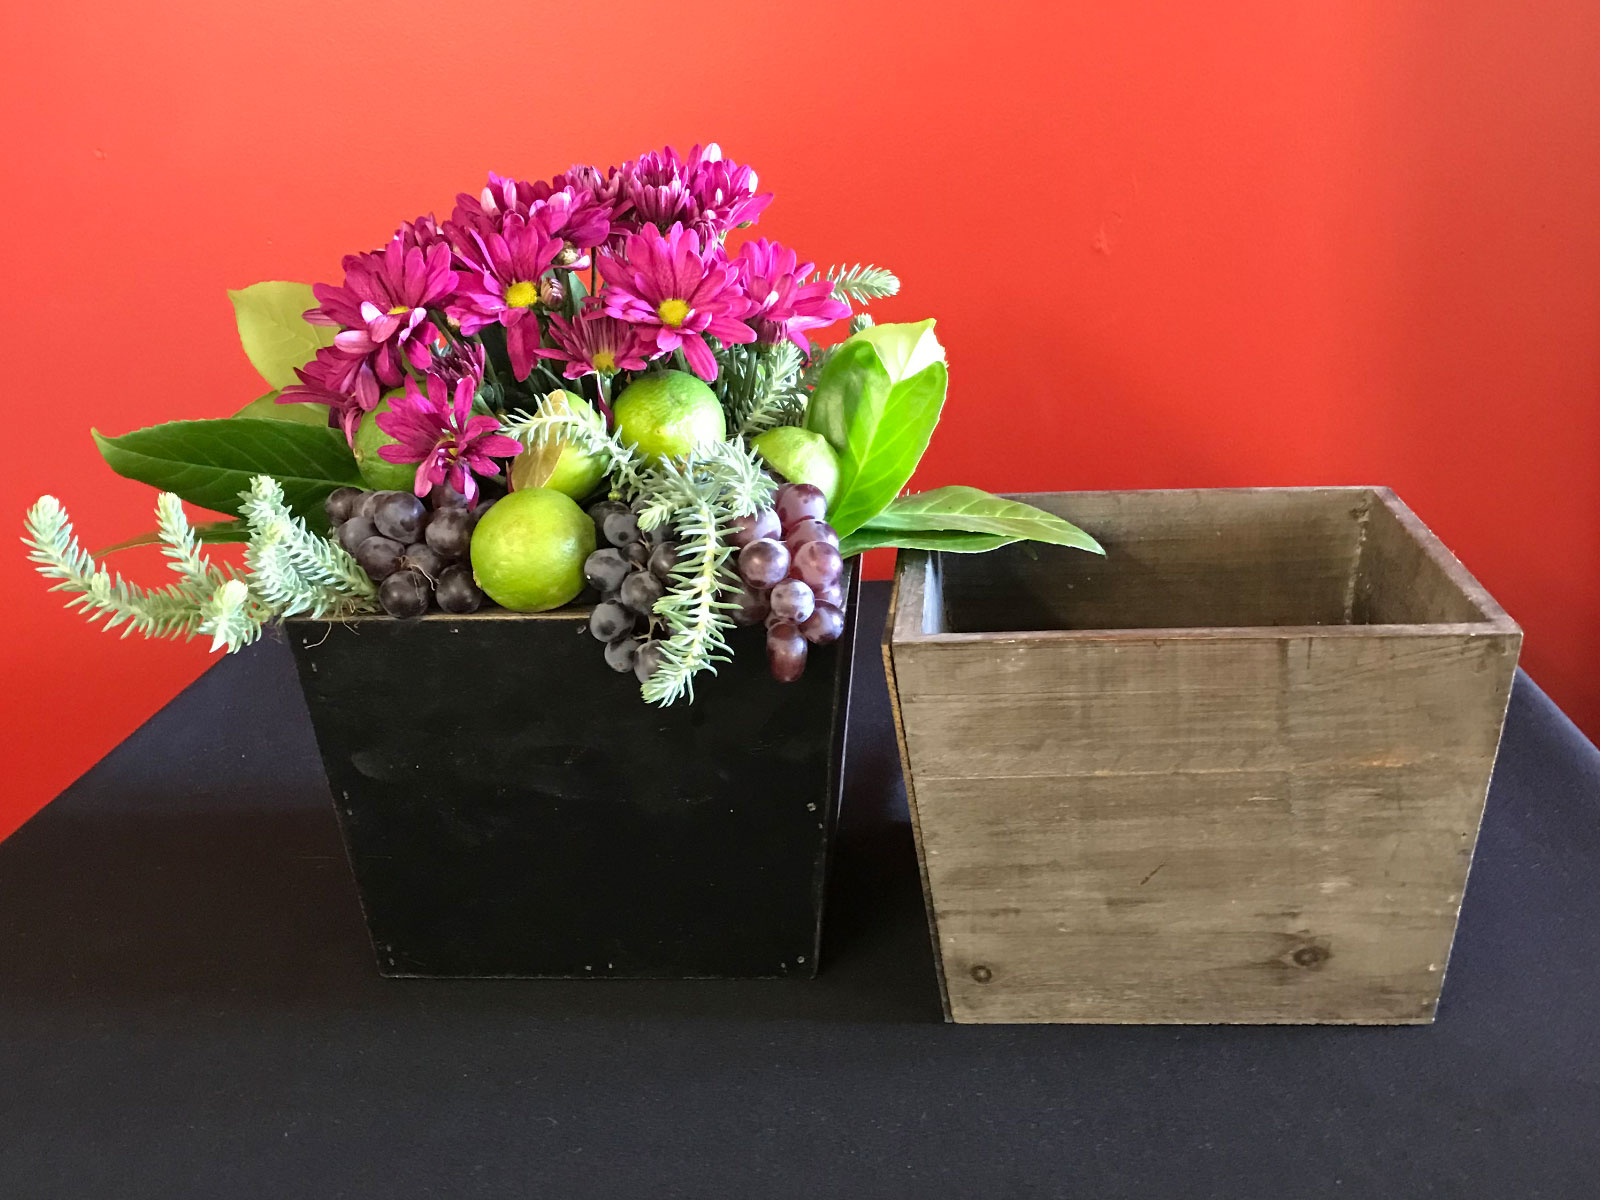 Purple flowers with green leaves, limes and grapes set in a grey box